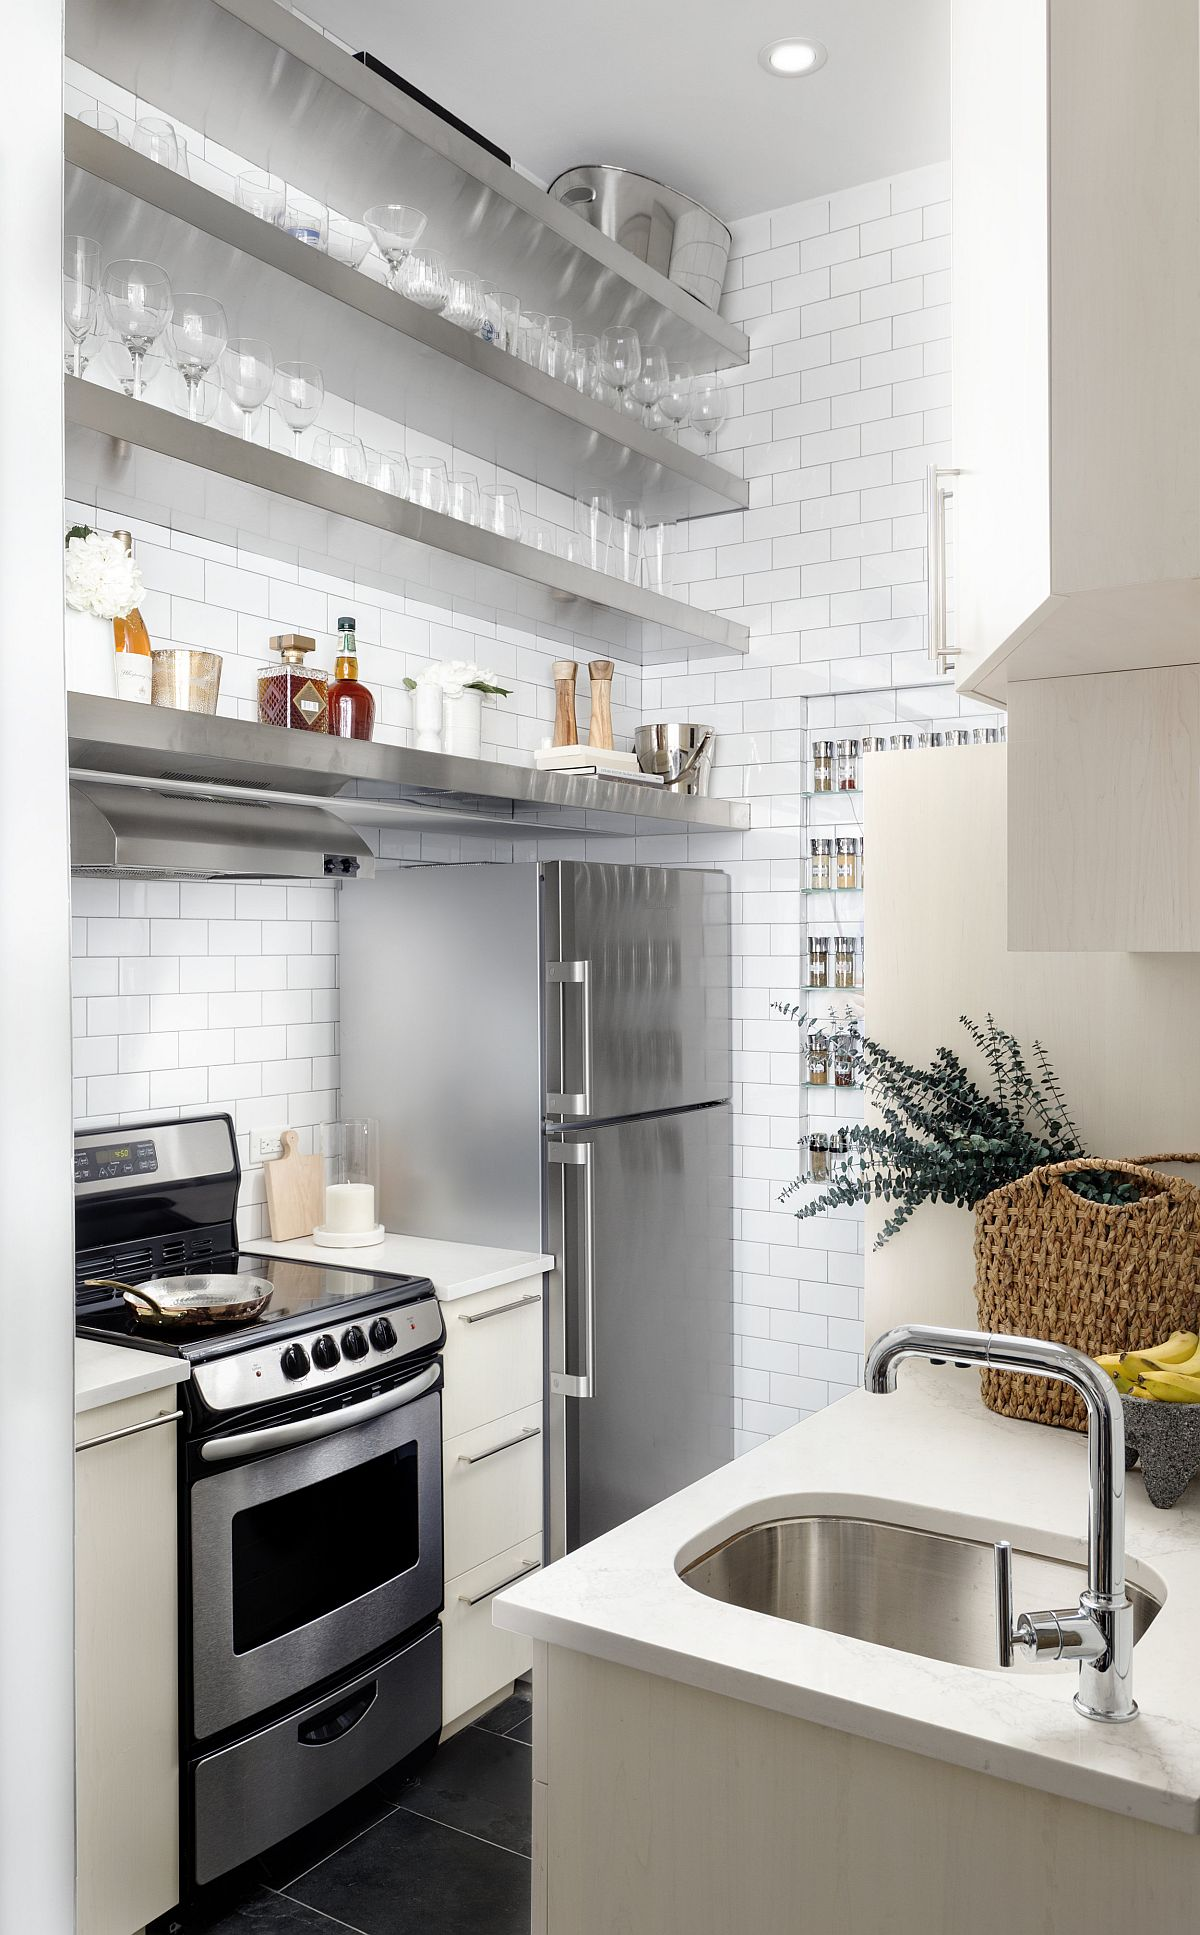 Tiny-kitchen-of-New-York-loft-with-stainless-steel-appliances-and-white-tiled-walls-87970